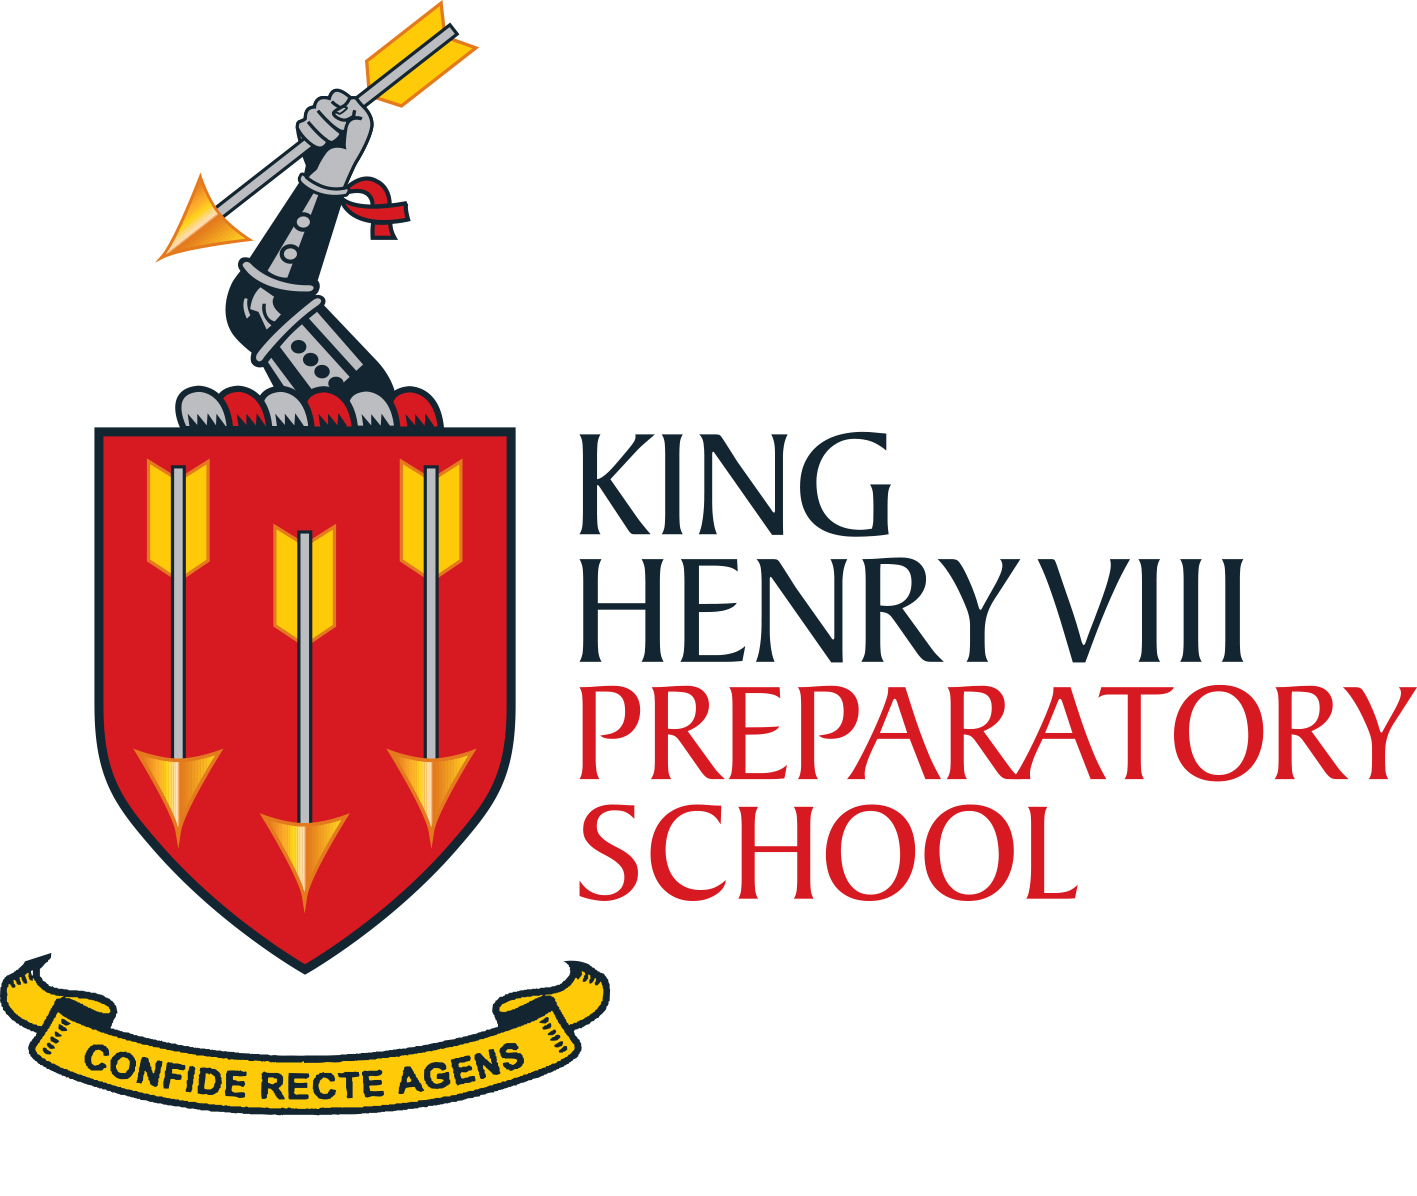 King Henry VIII Preparatory School's logo